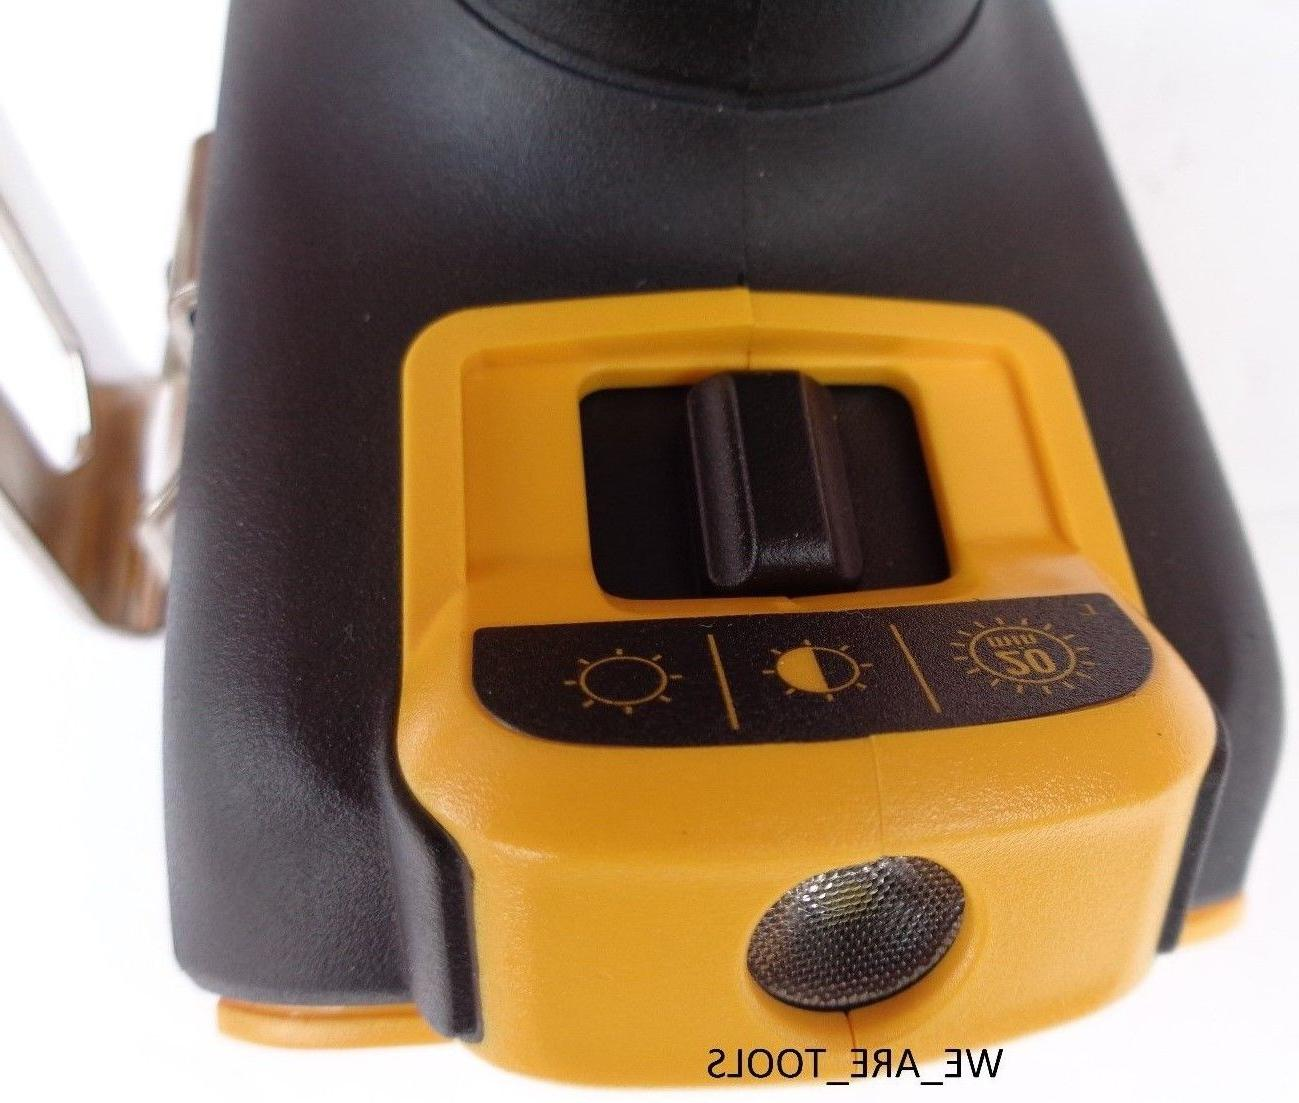 New DeWalt 20V Brushless Hammer DCB203 Battery